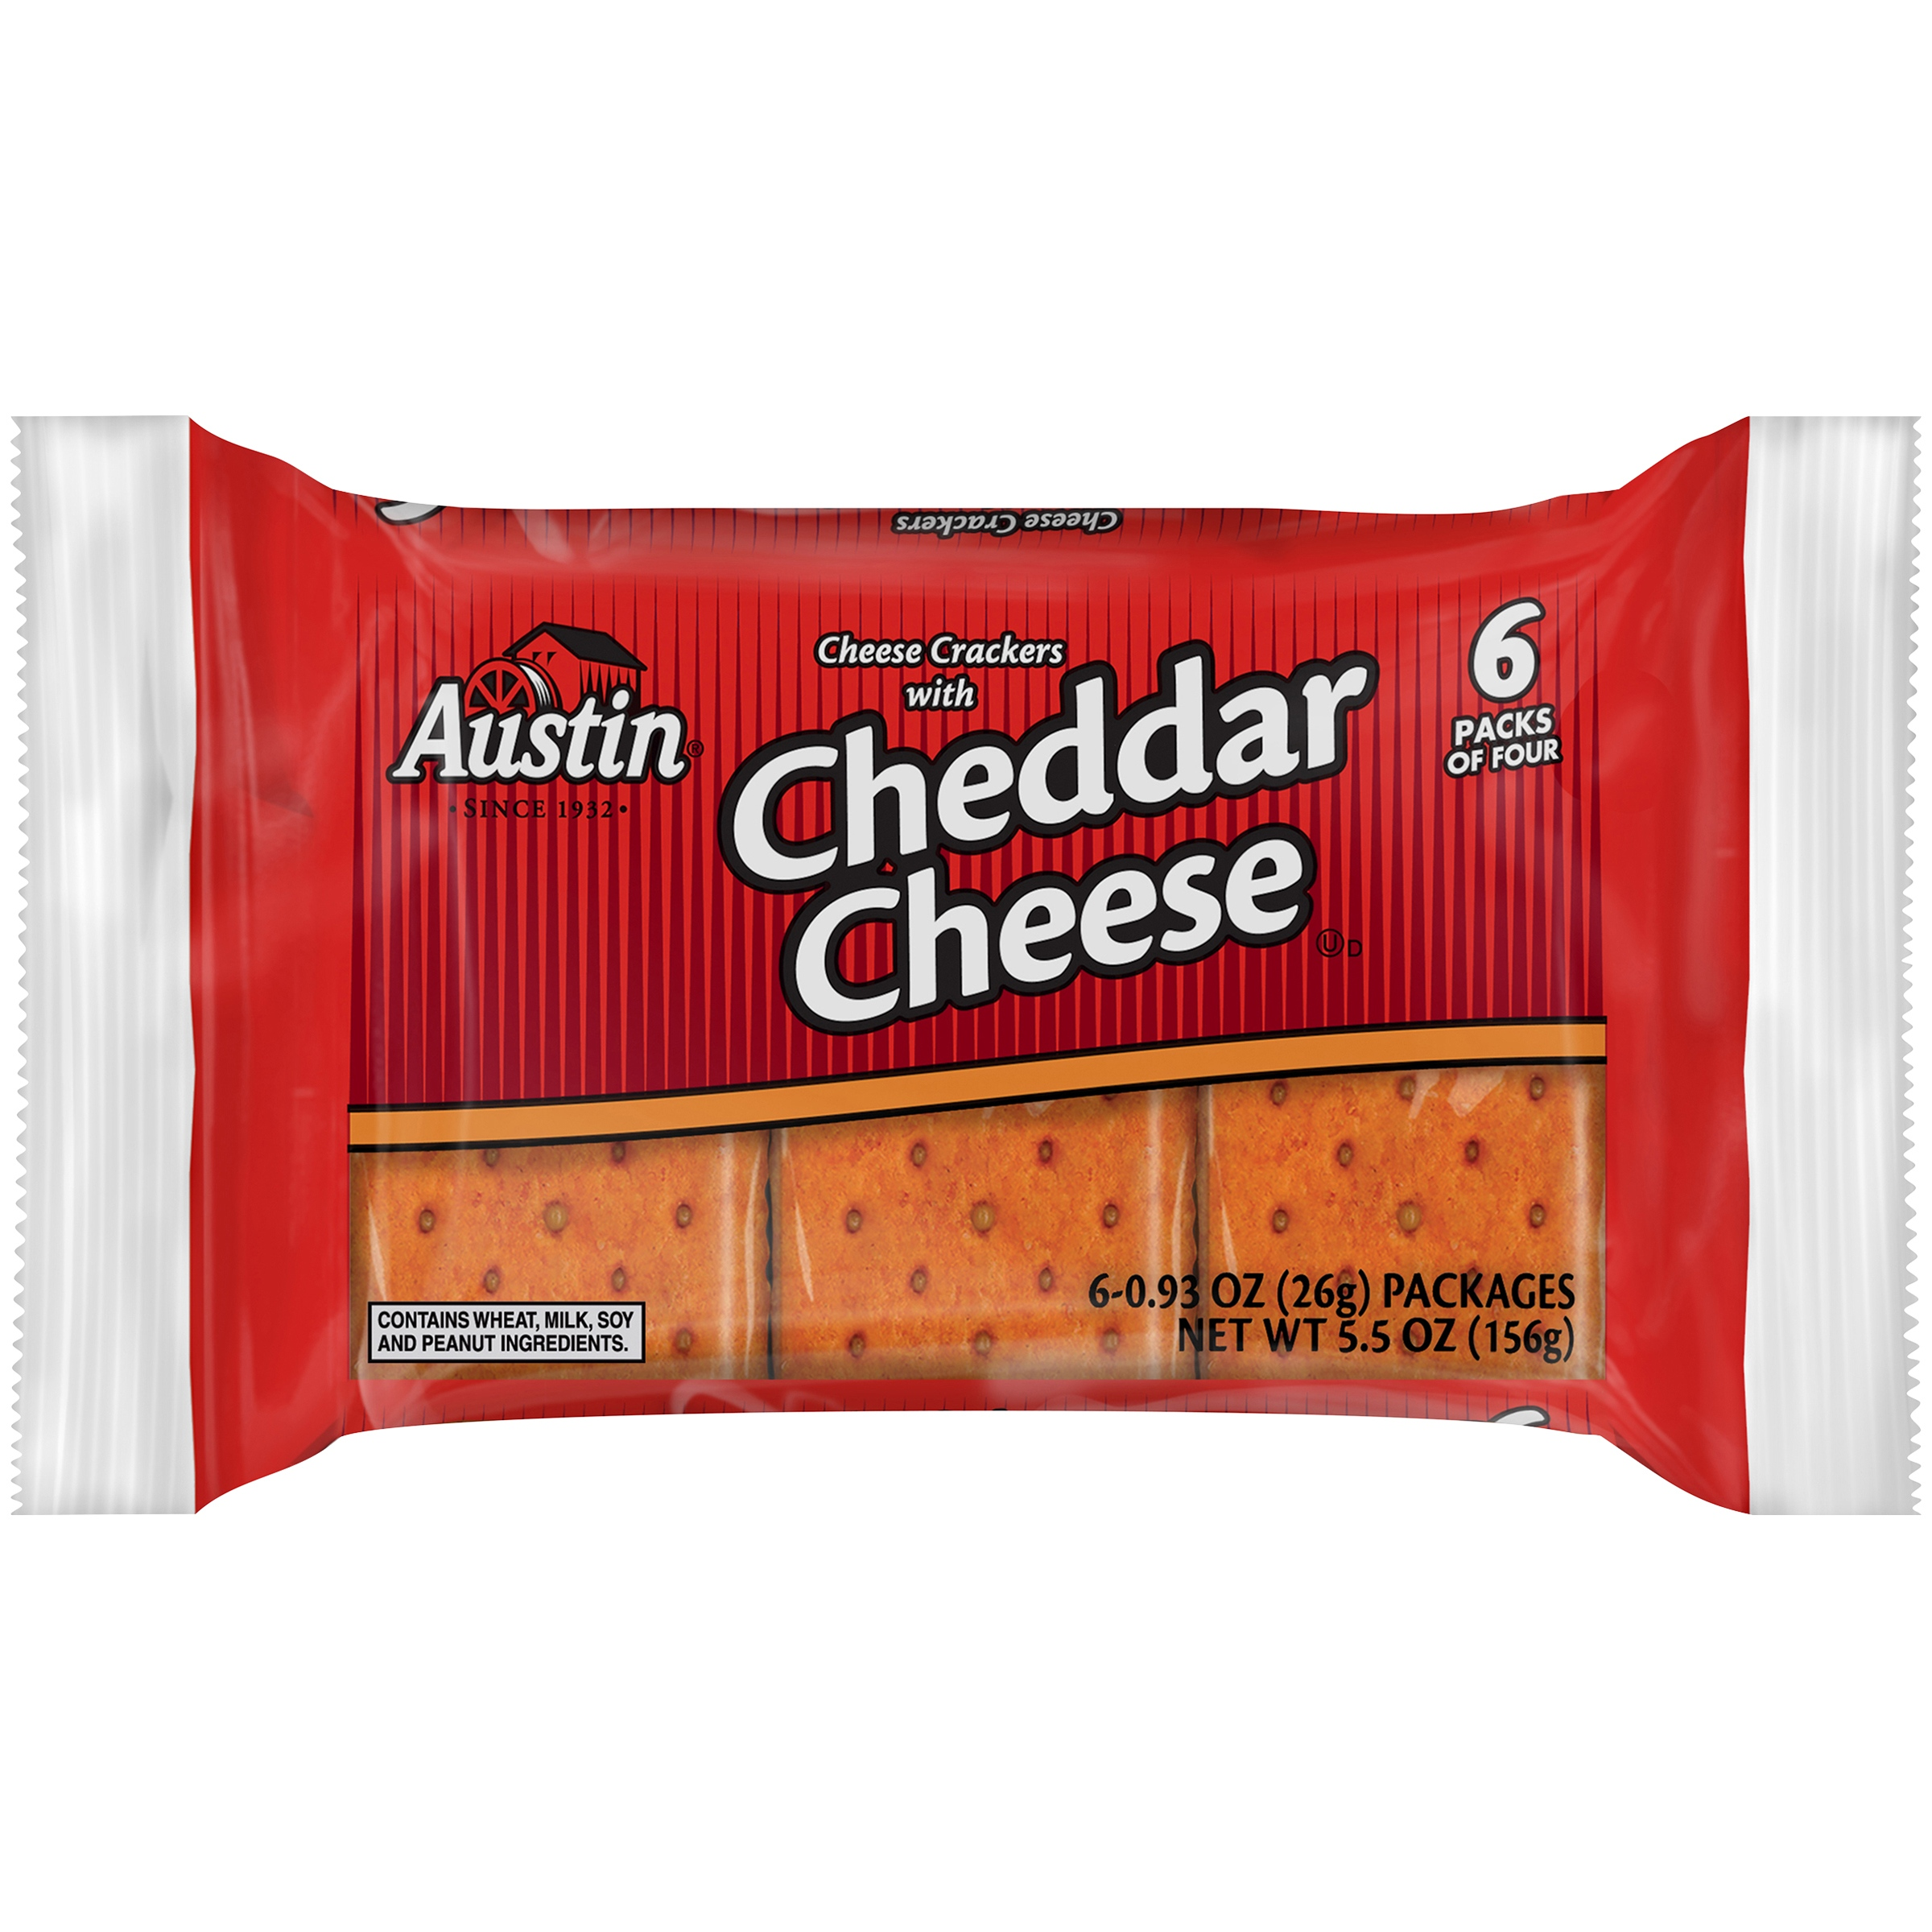 Austin Cheese Crackers w Cheddar Cheese Sandwich Crackers ...  |Austin Cheddar Cheese